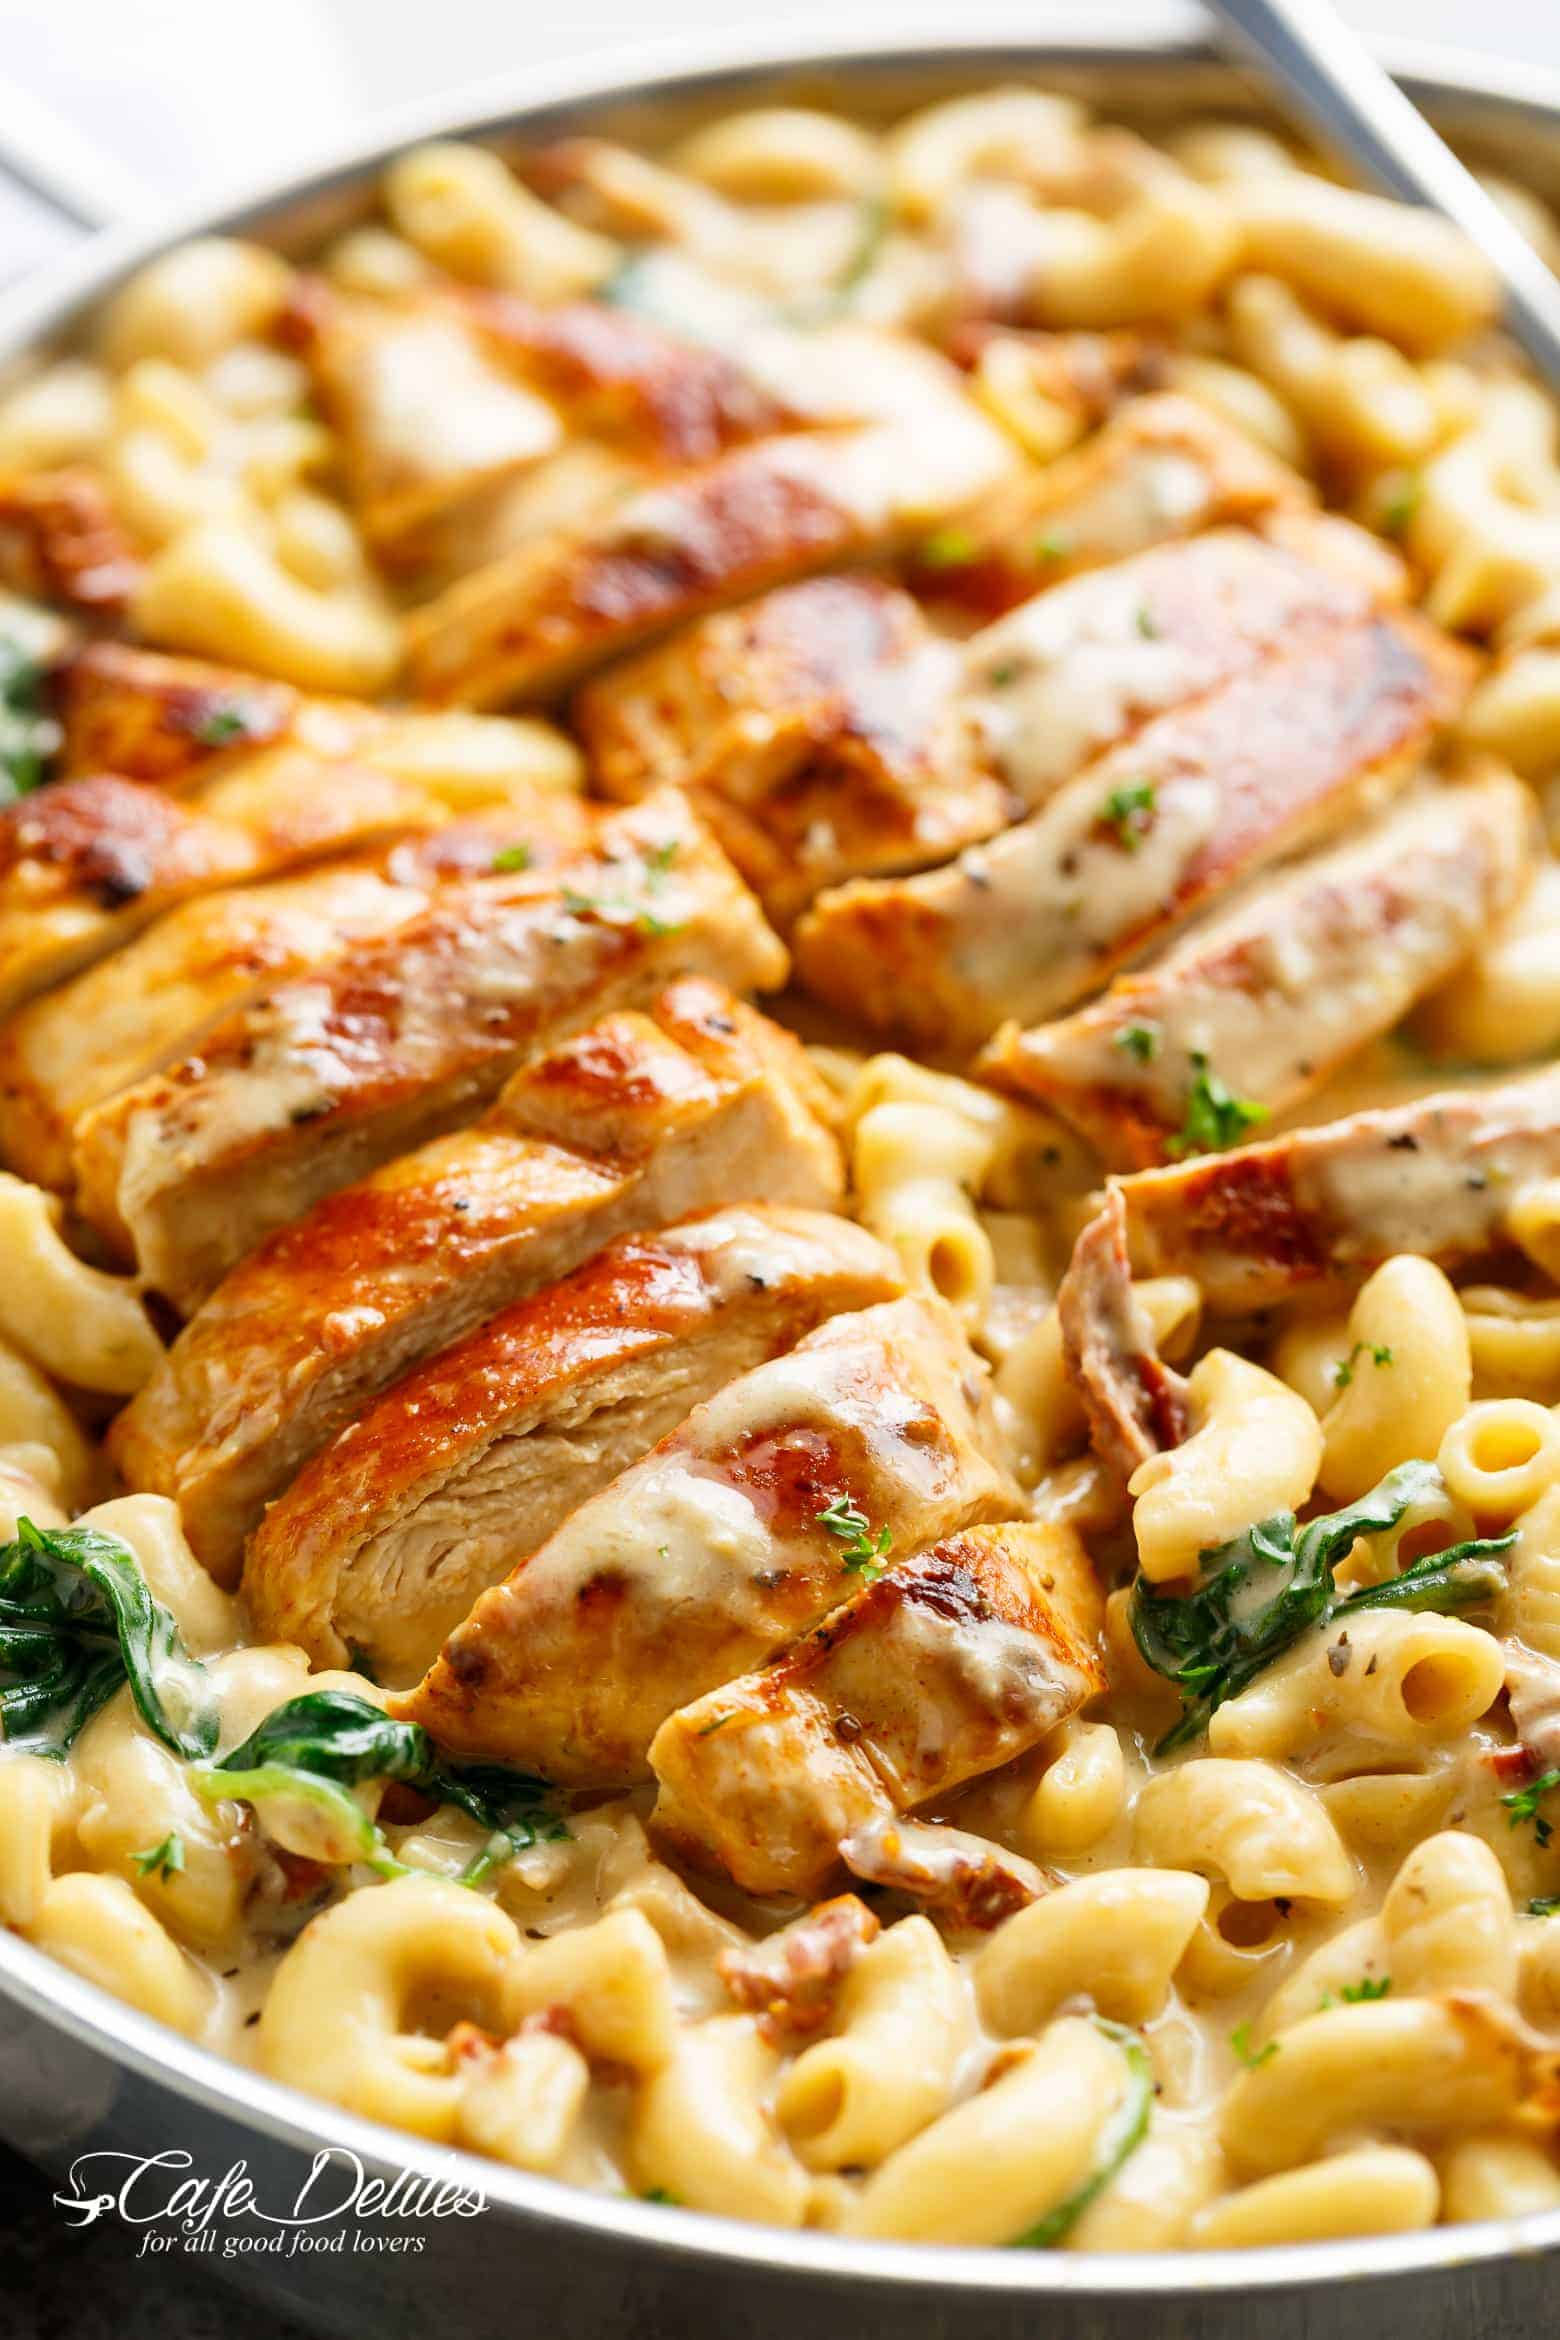 A silver frying pan filled with creamy tuscan style Mac and cheese with wilted spinach and sun dried tomato strips! Two sliced chicken breasts sit on top of Mac and cheese with a serving spoon in the pan ready to serve!